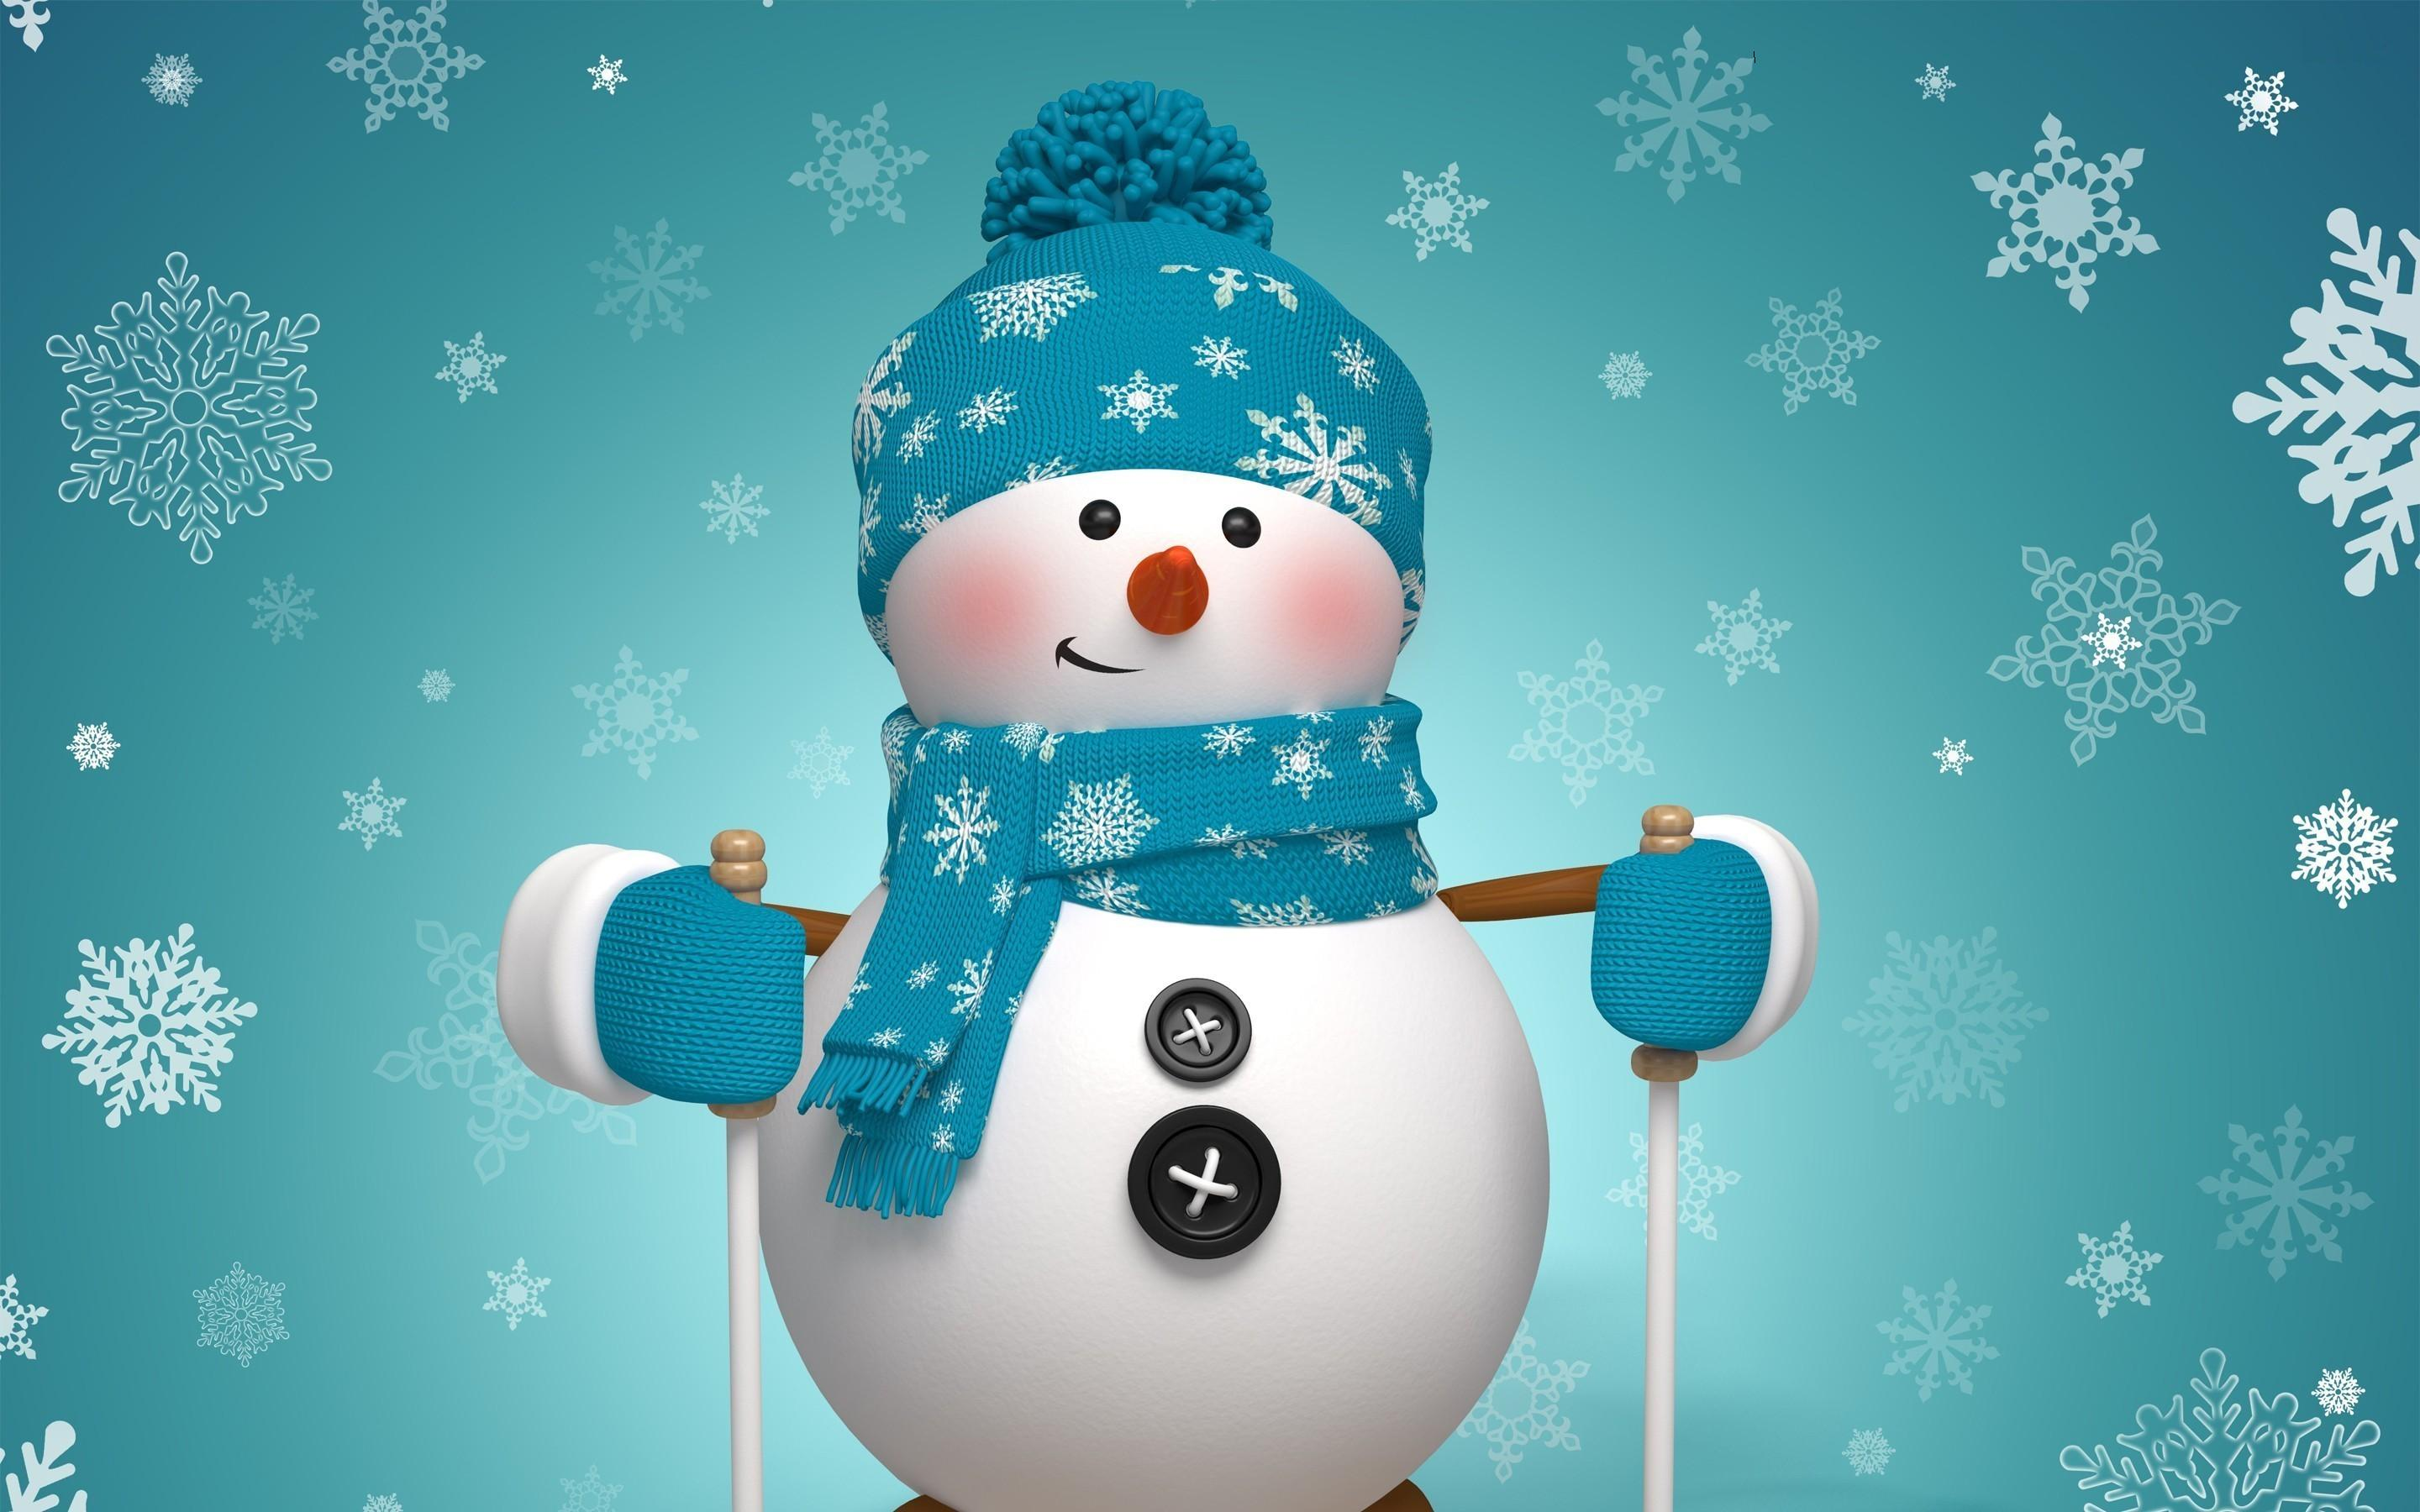 snowman art widescreen wallpaper 52525